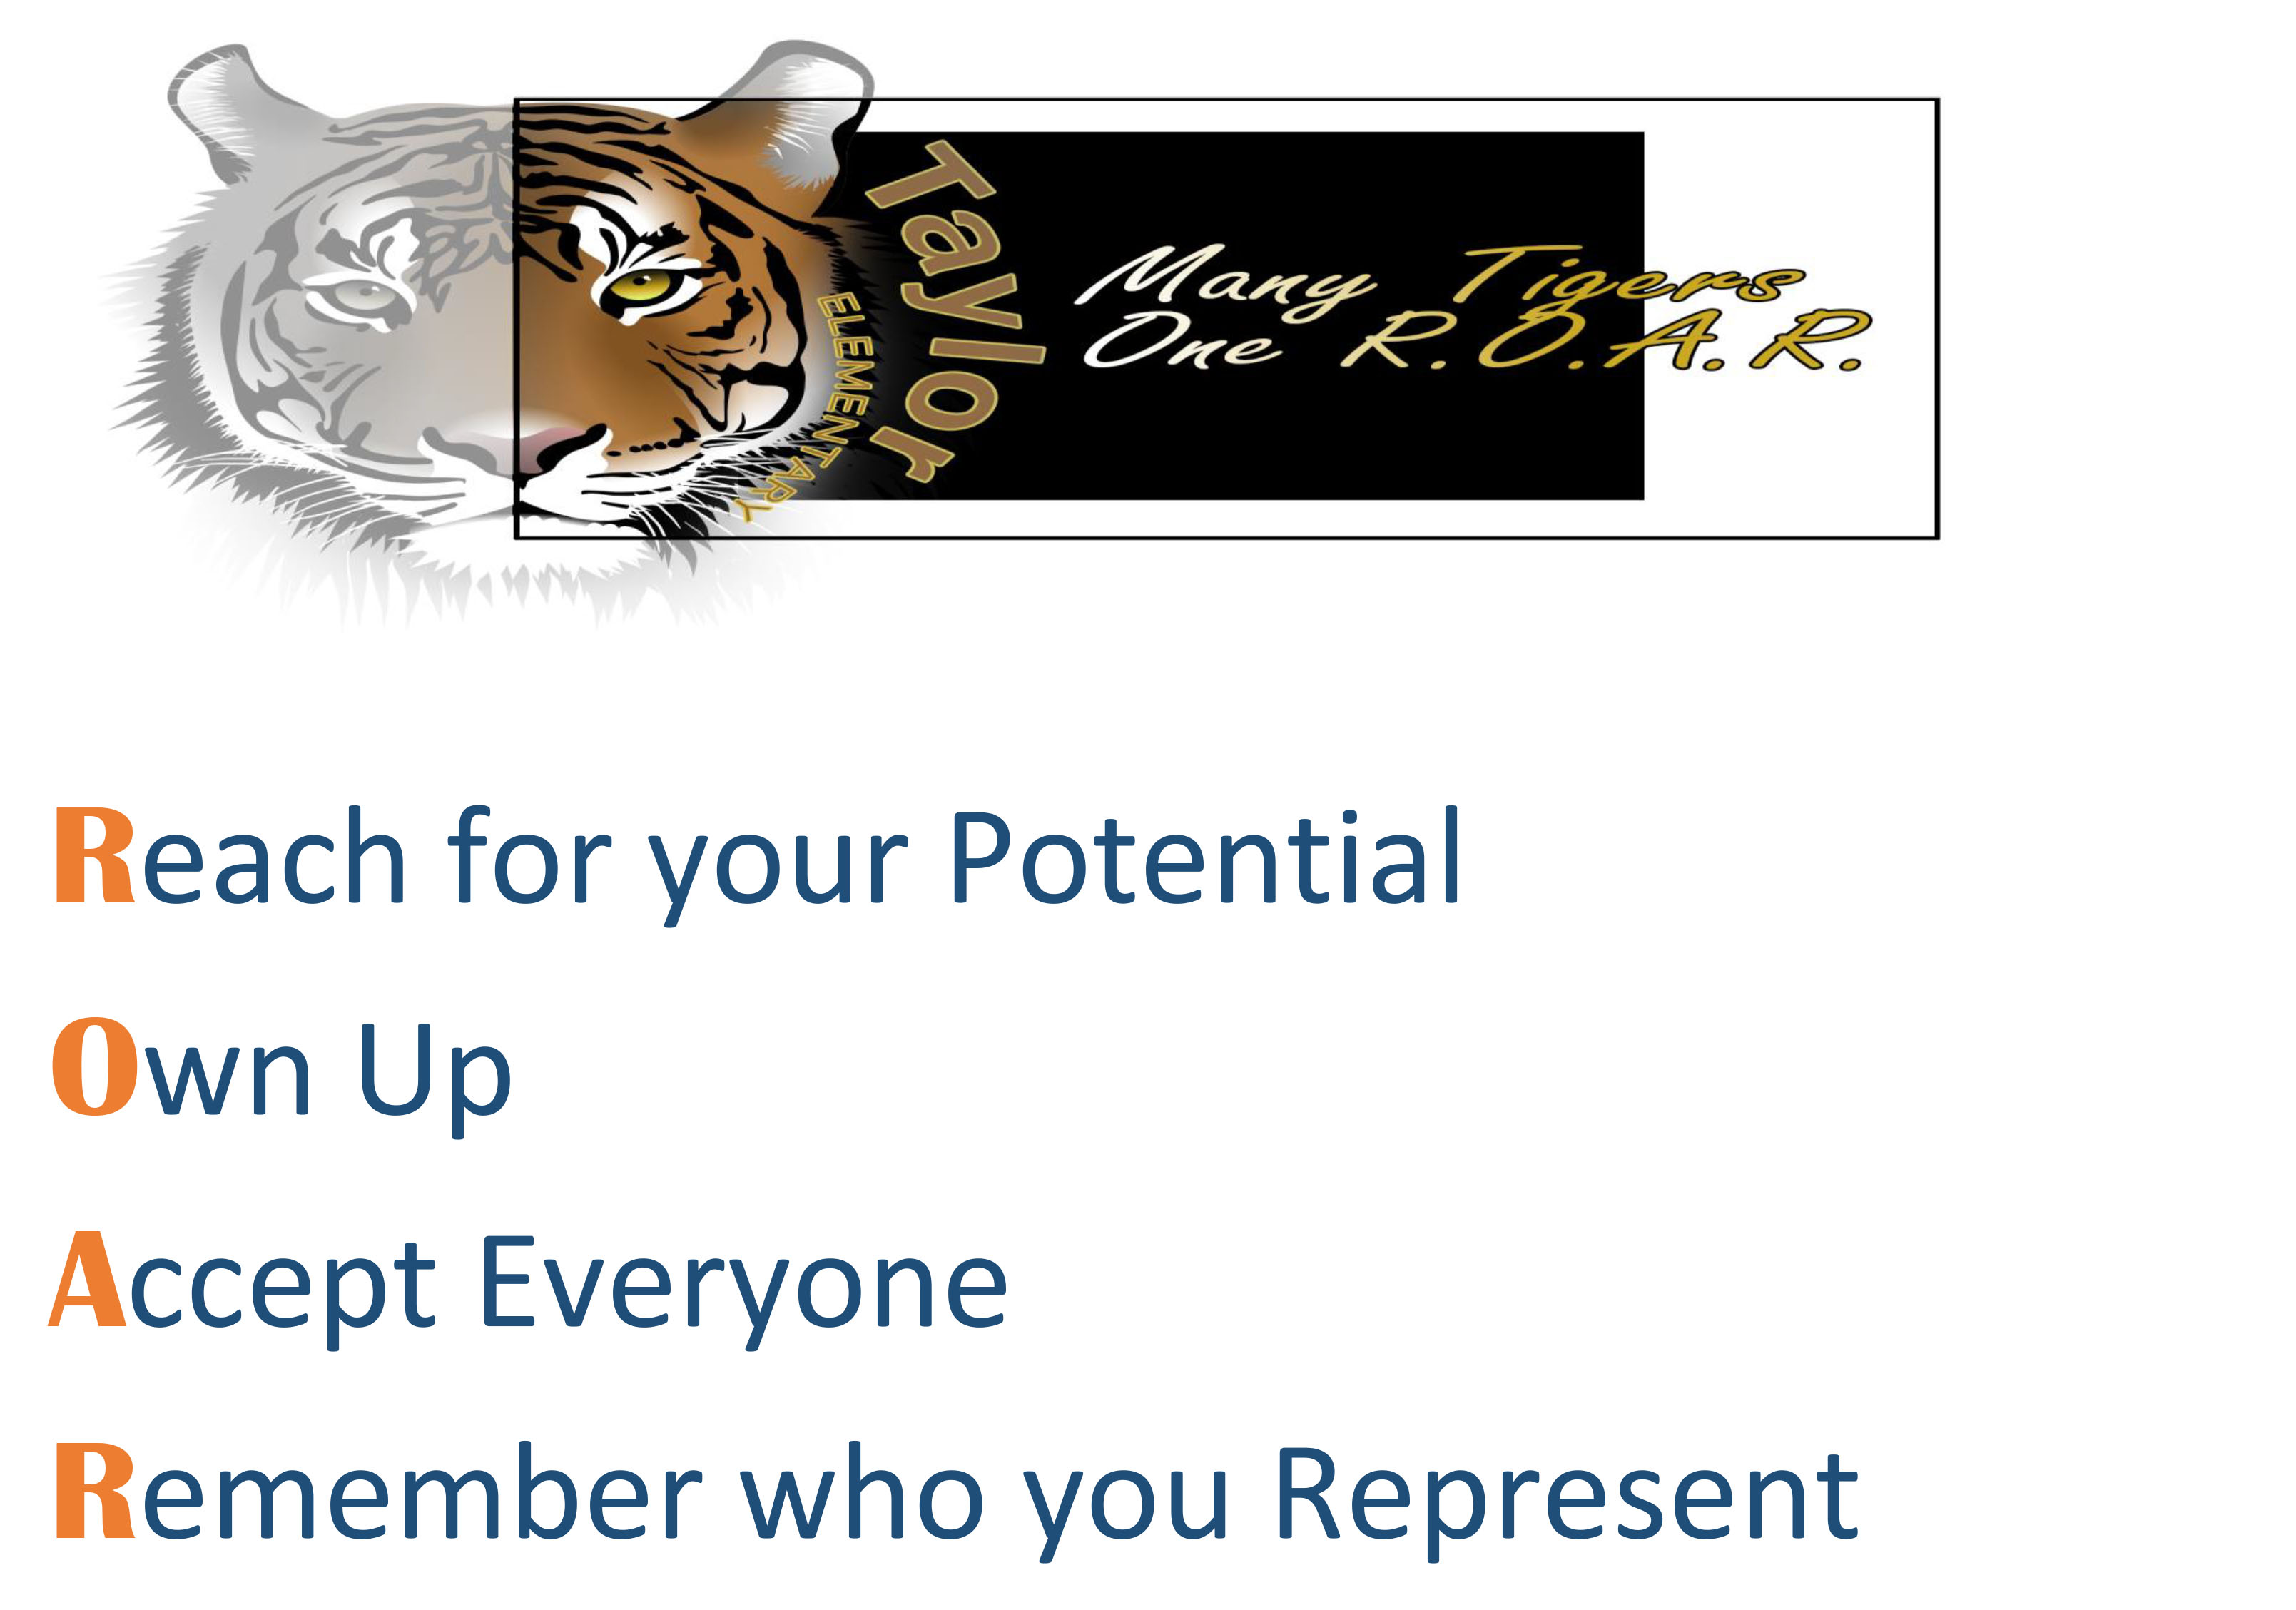 Reach your potential, Own up, Accept Everyone, Remember who you represent